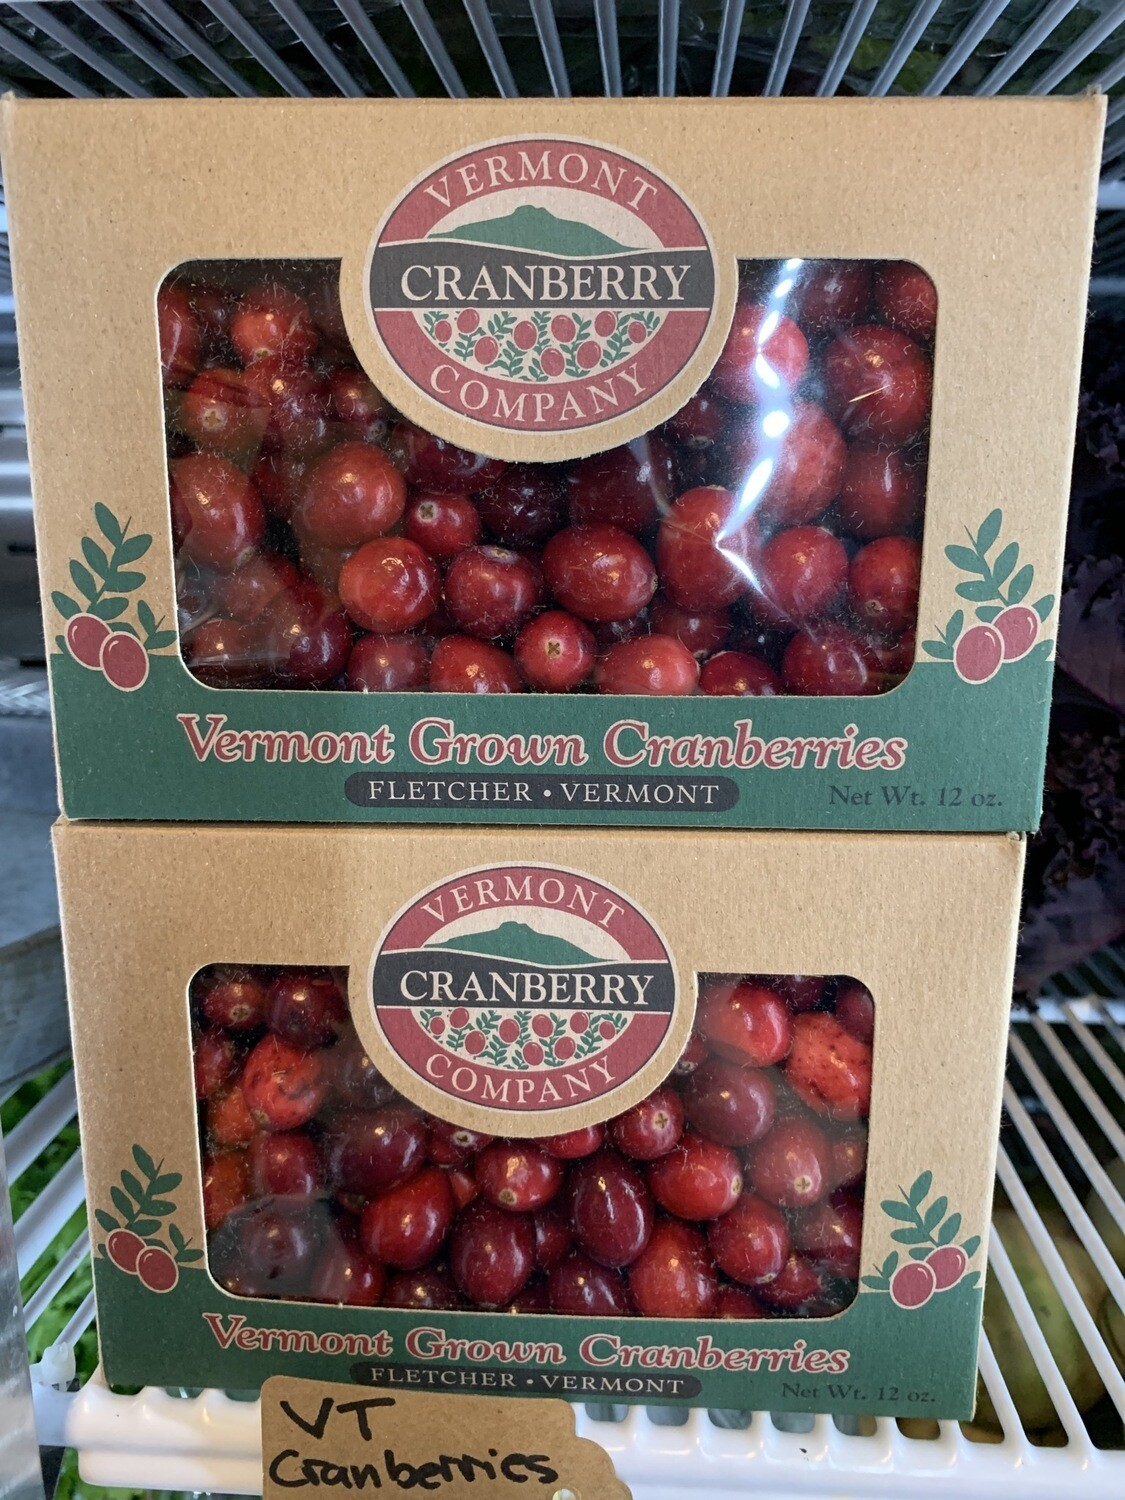 Cranberries - VT Cranberry Company